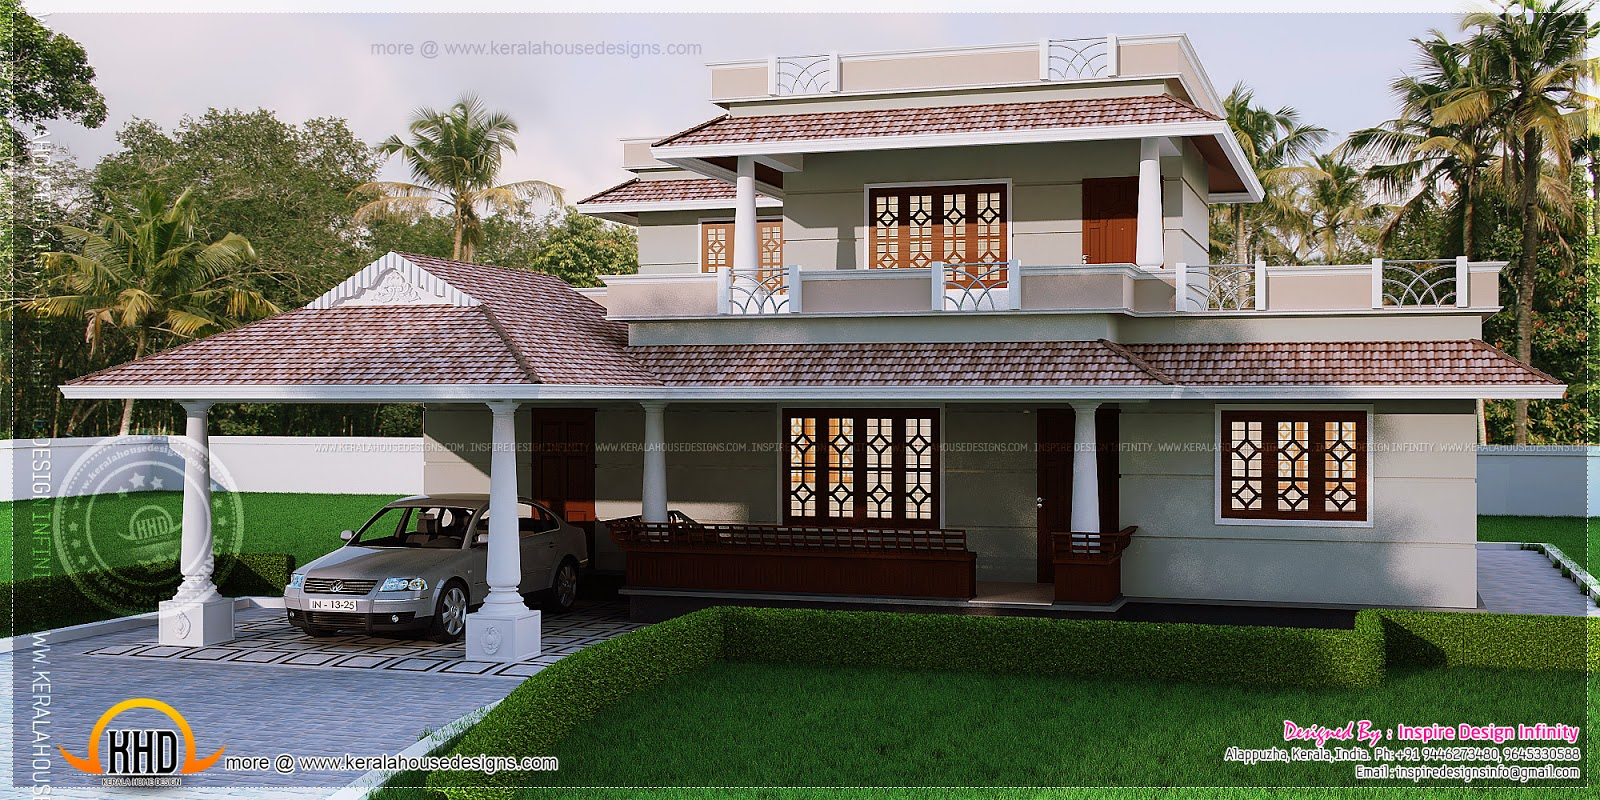 4 Bedroom Kerala Style House In 300 Square Yards